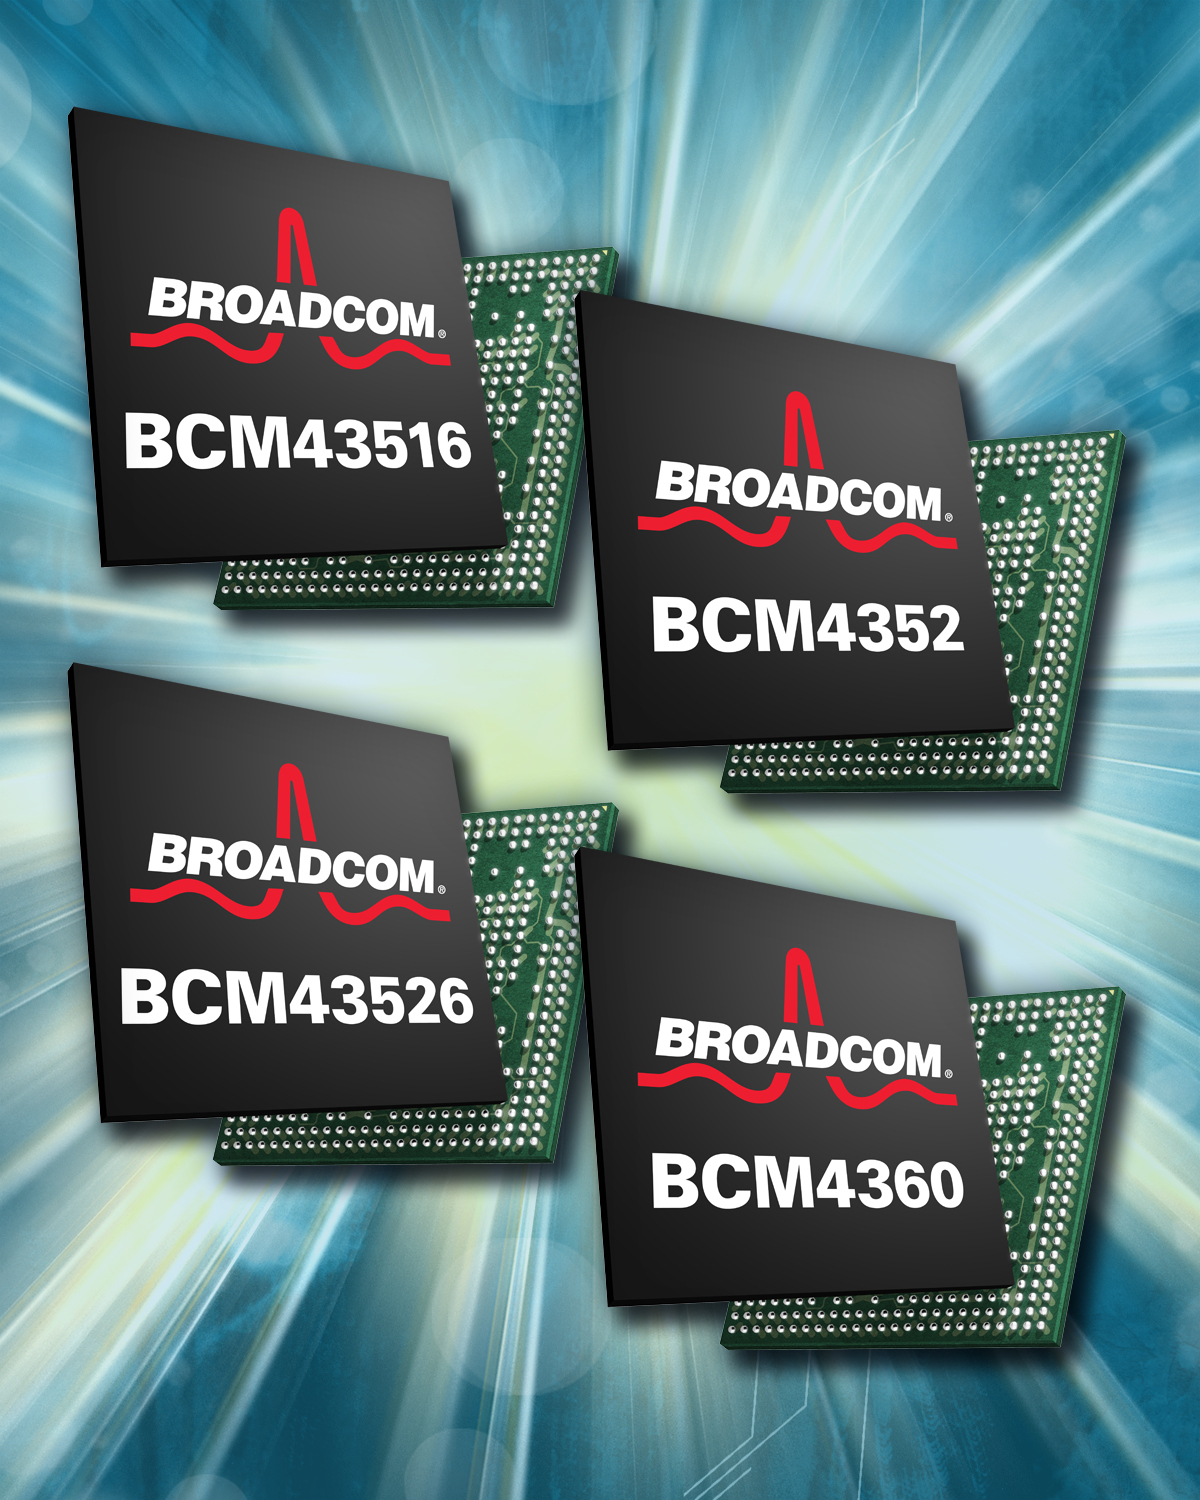 Broadcom's new 802.11ac 5G WiFi chips will be showcased at CES 2012.